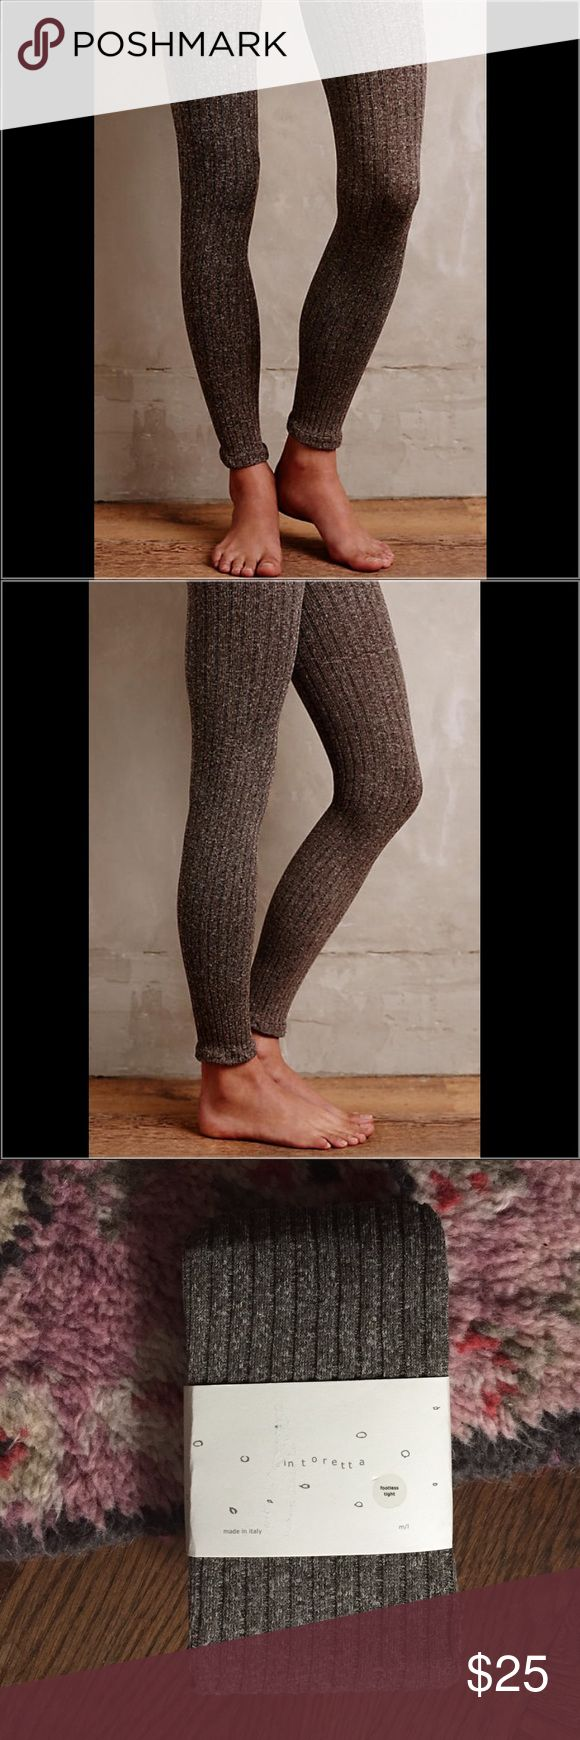 Anthropologie Footless Tights Marled Knit Tights by Tintoretta So soft!  Ribbed nylon-spandex knit Made in Italy Anthropologie Accessories Hosiery & Socks